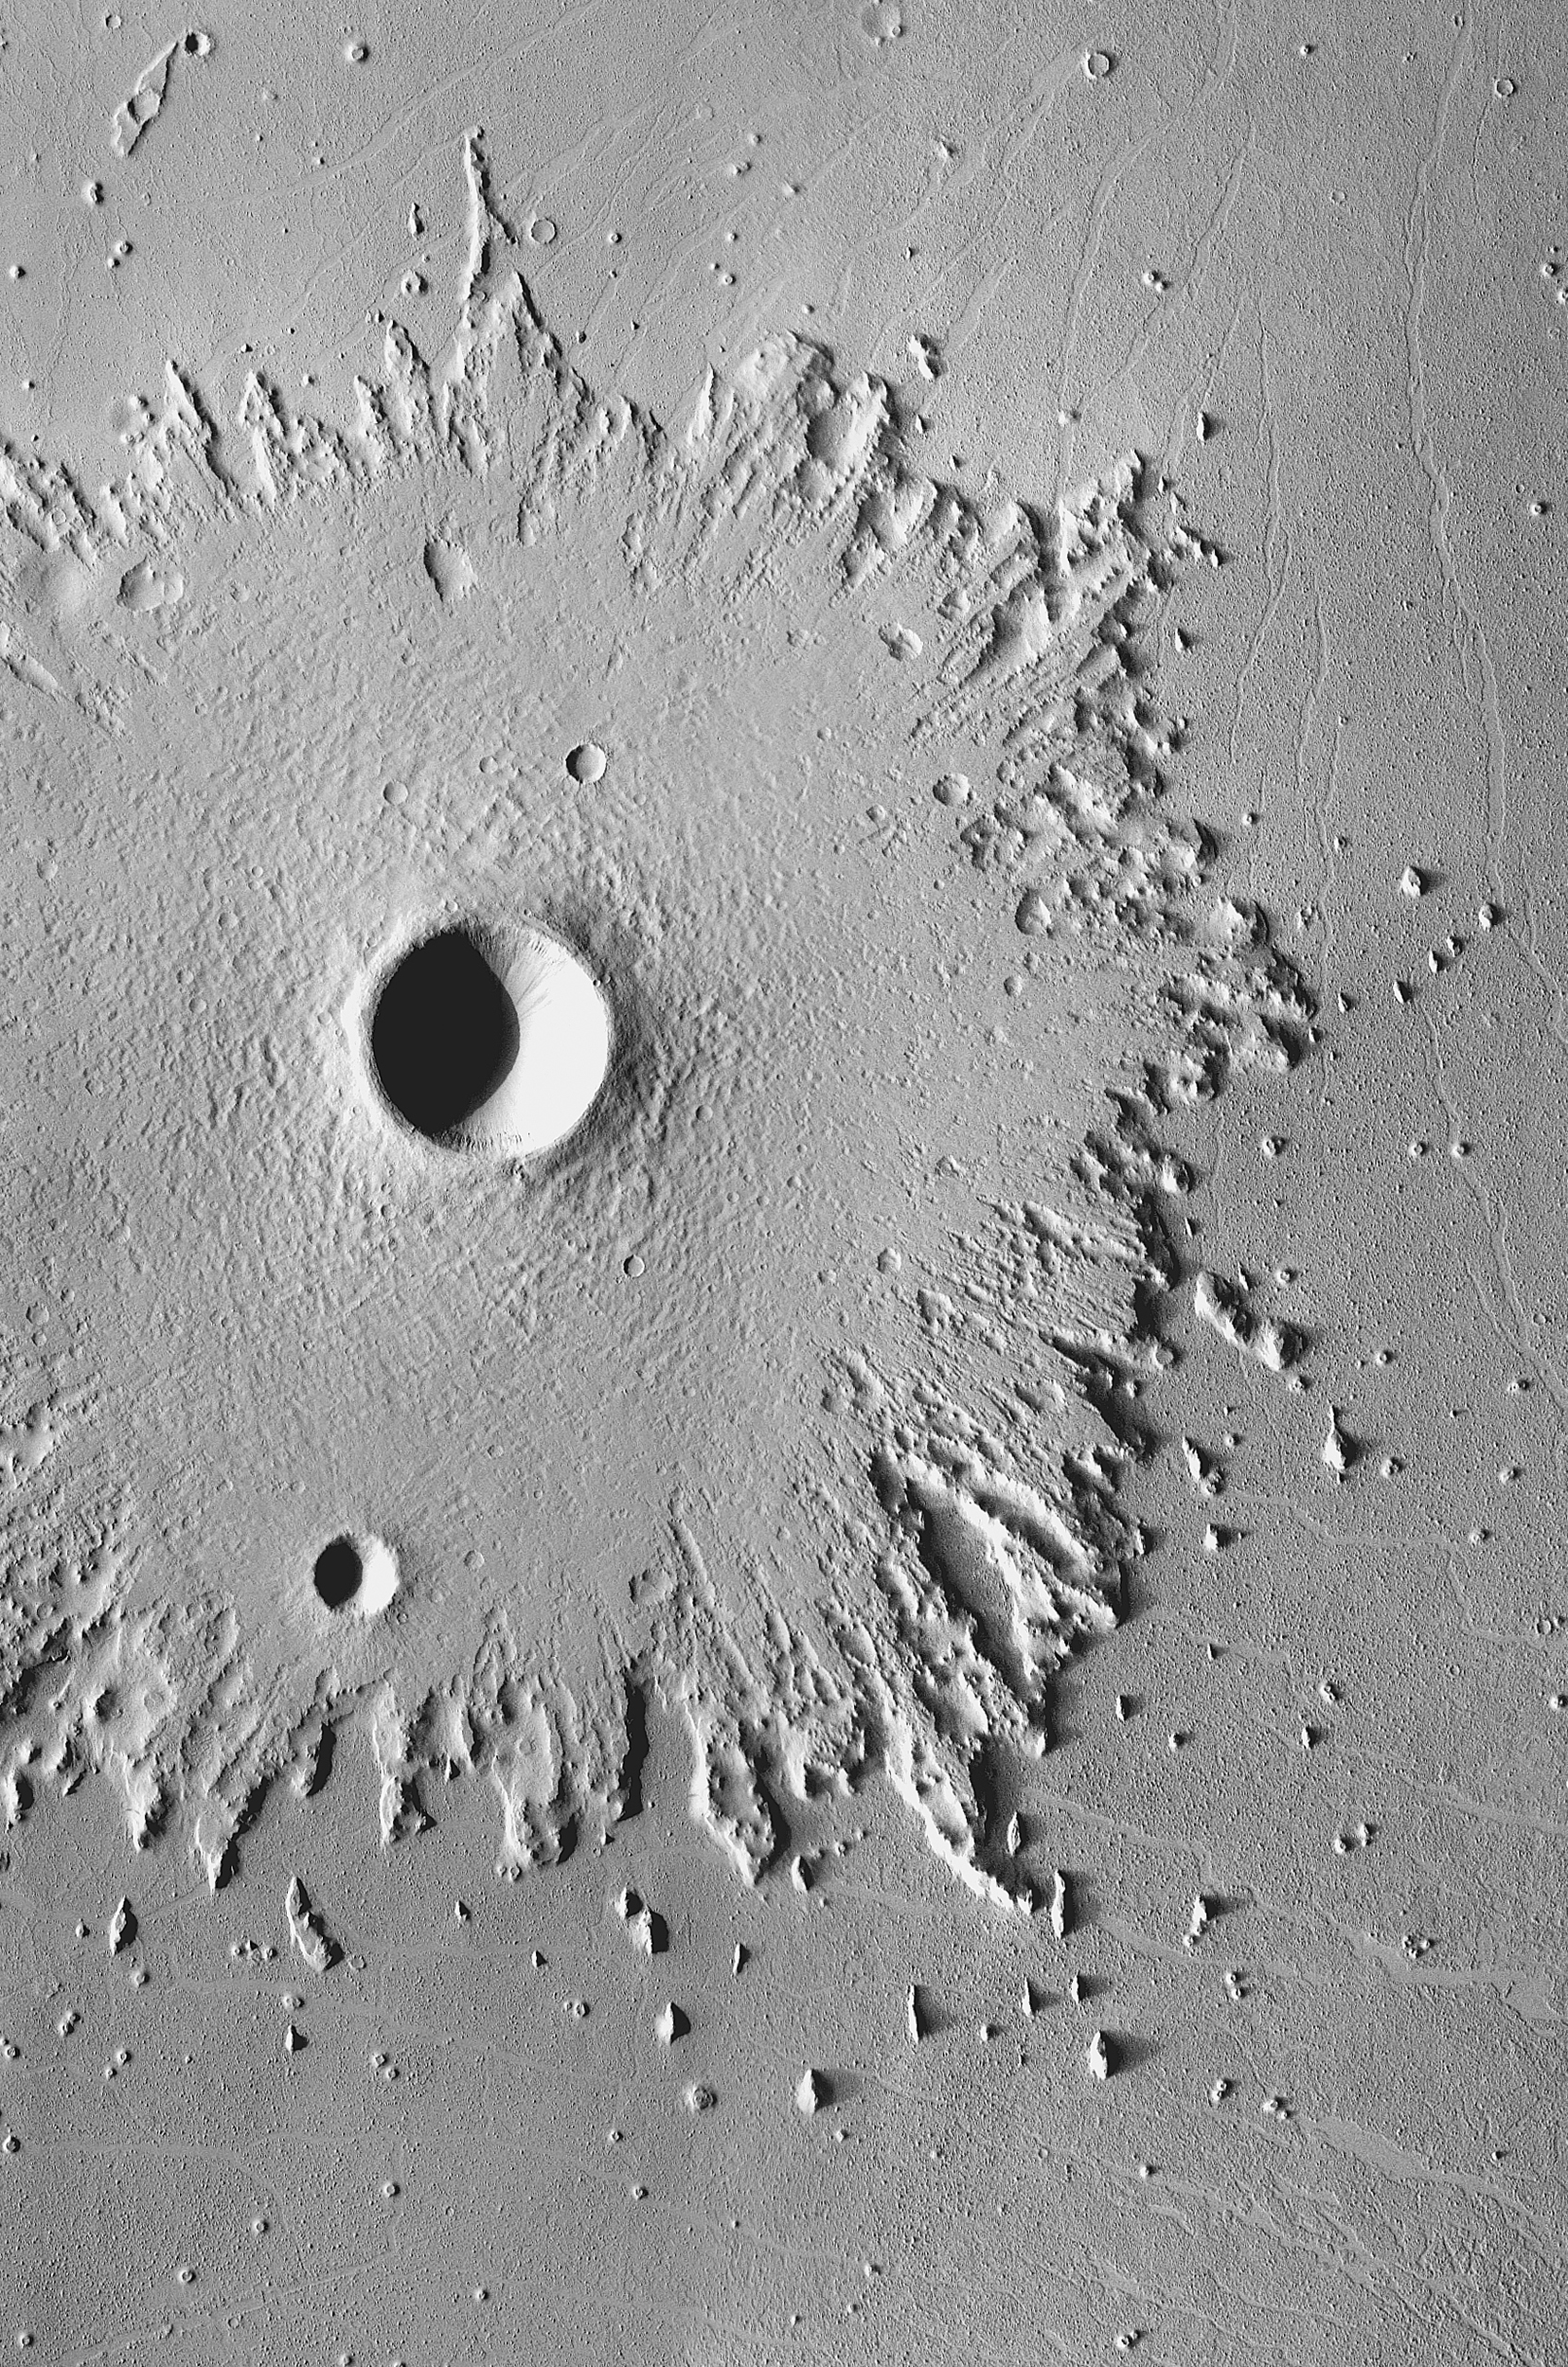 Radical Erosion:  The wide, circular blanket of ejected debris surrounding this crater has become greatly eroded by the wind, which has stripped its surface features.  This images was acquired between May 2003 and April 2006 by the Thermal Emission Imaging System instrument on NASA's Mars Odyssey orbiter.